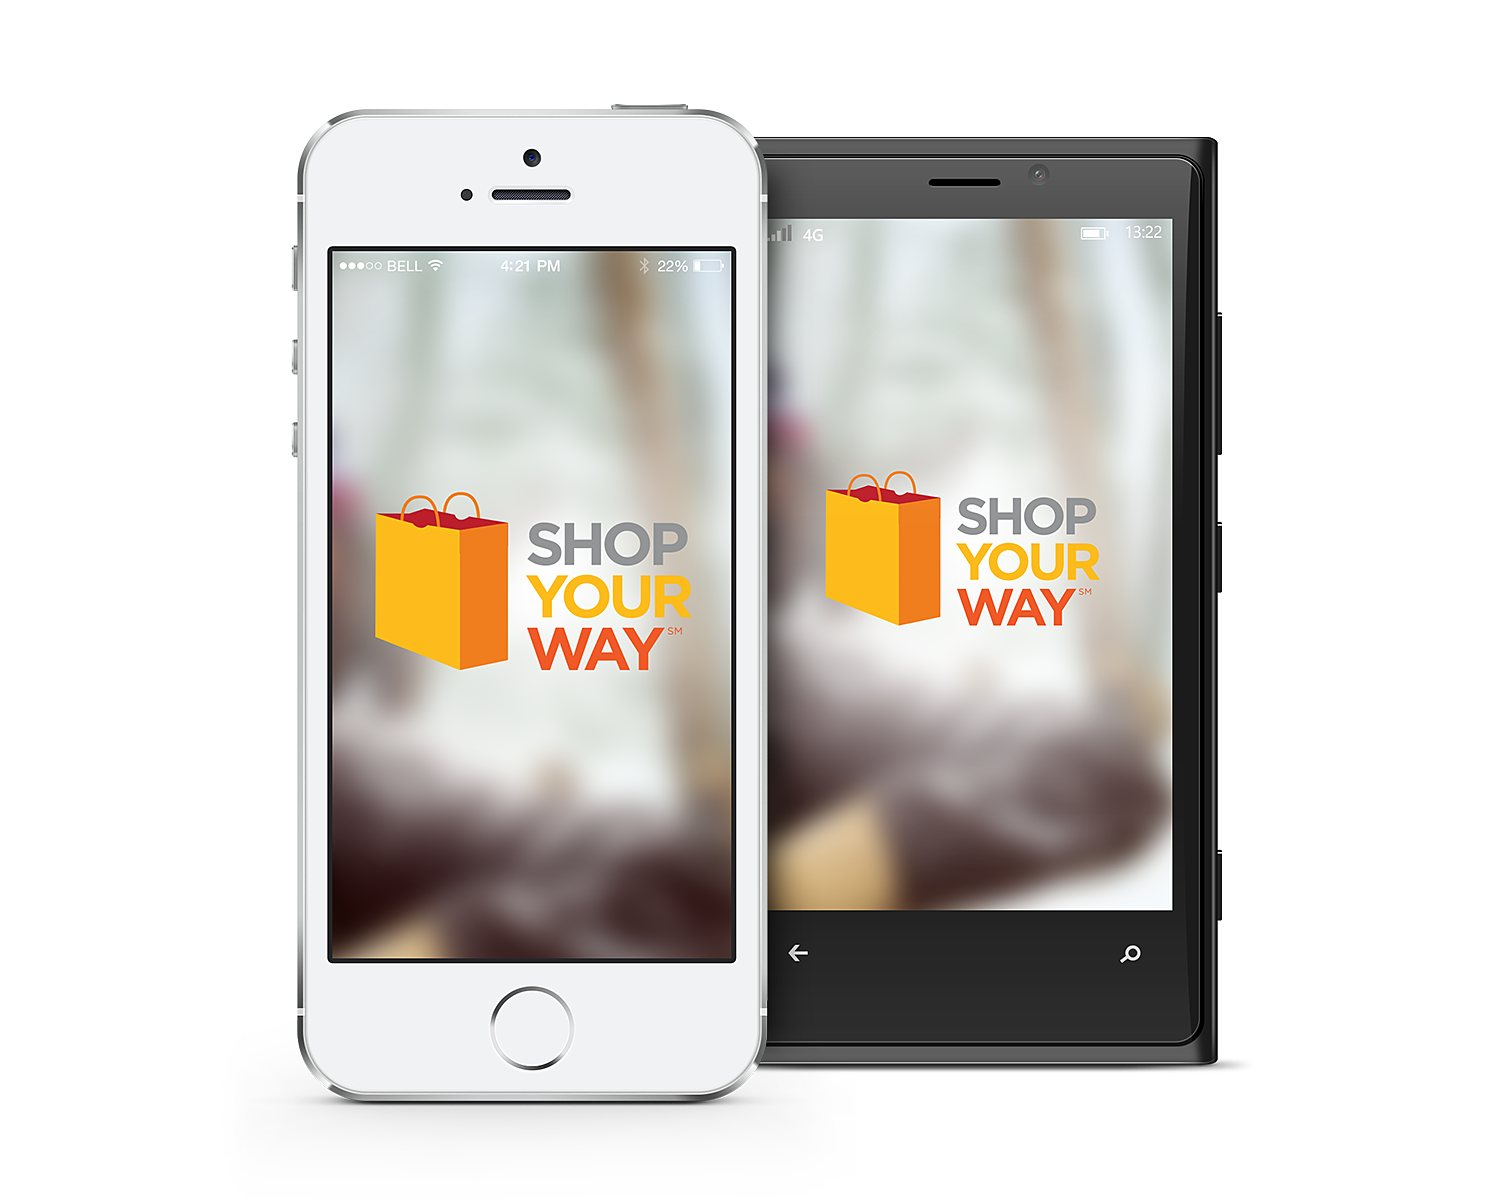 Aplicación de Shop Your Way